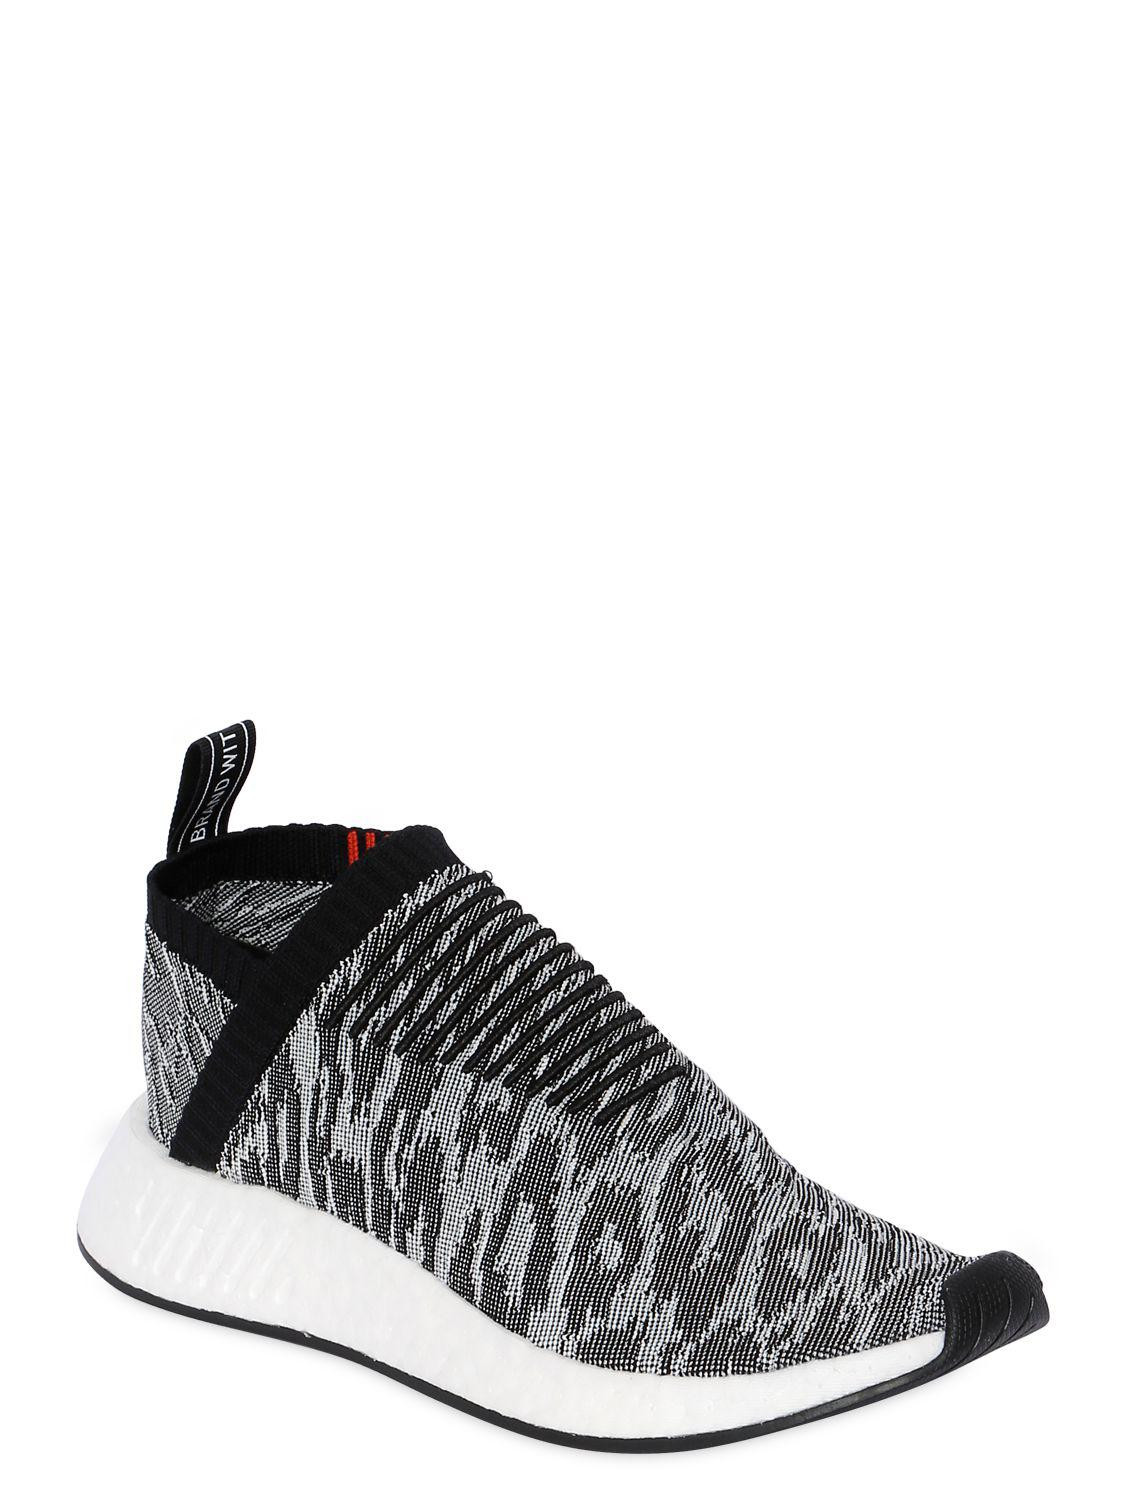 05a85ad4bbbd Lyst - adidas Originals Nmd Cs2 Leopard Primeknit Sneakers in Black ...